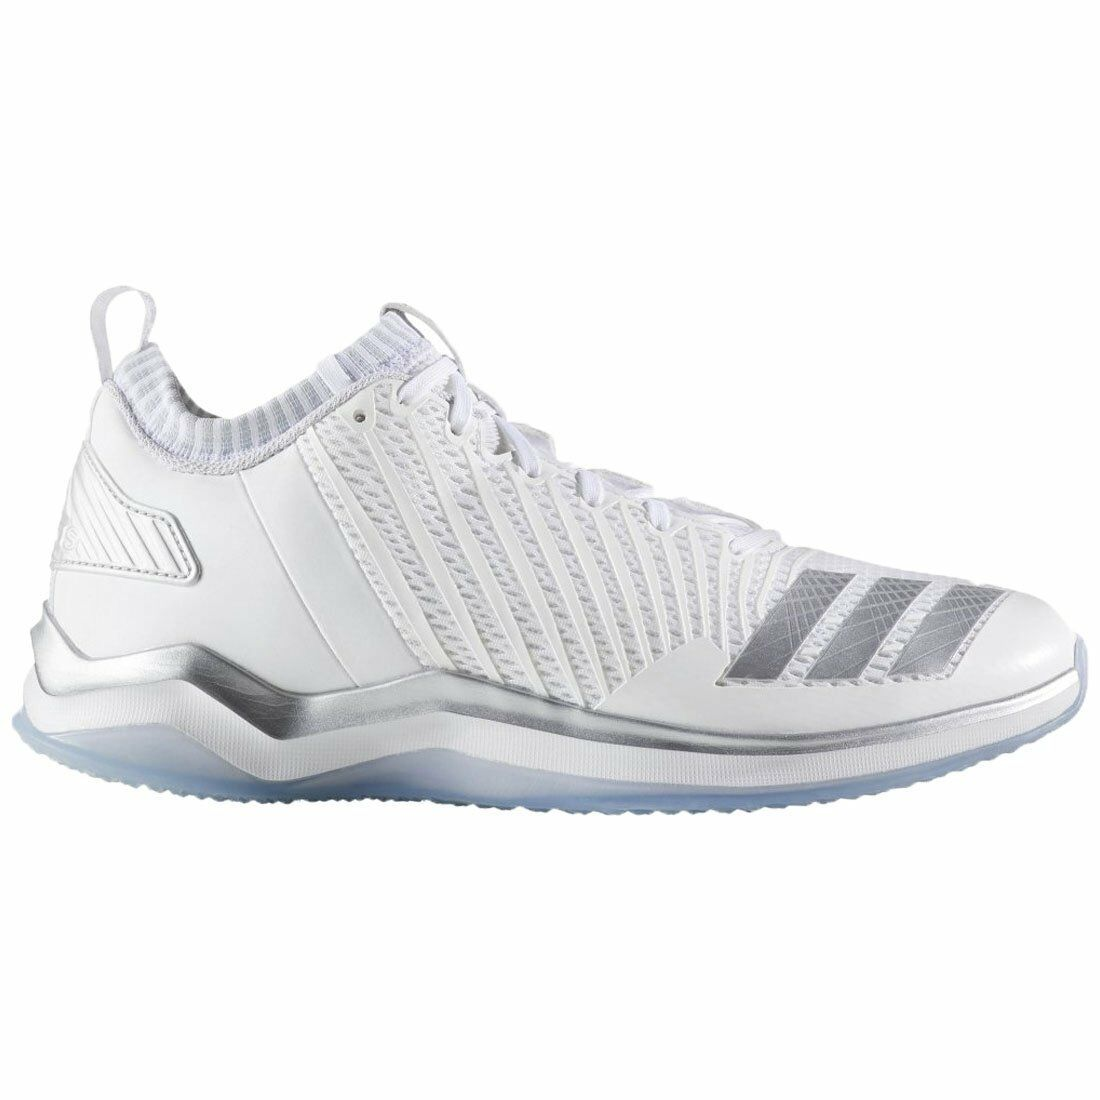 Adidas Men's Icon Trainer Training White shoes - BY3301